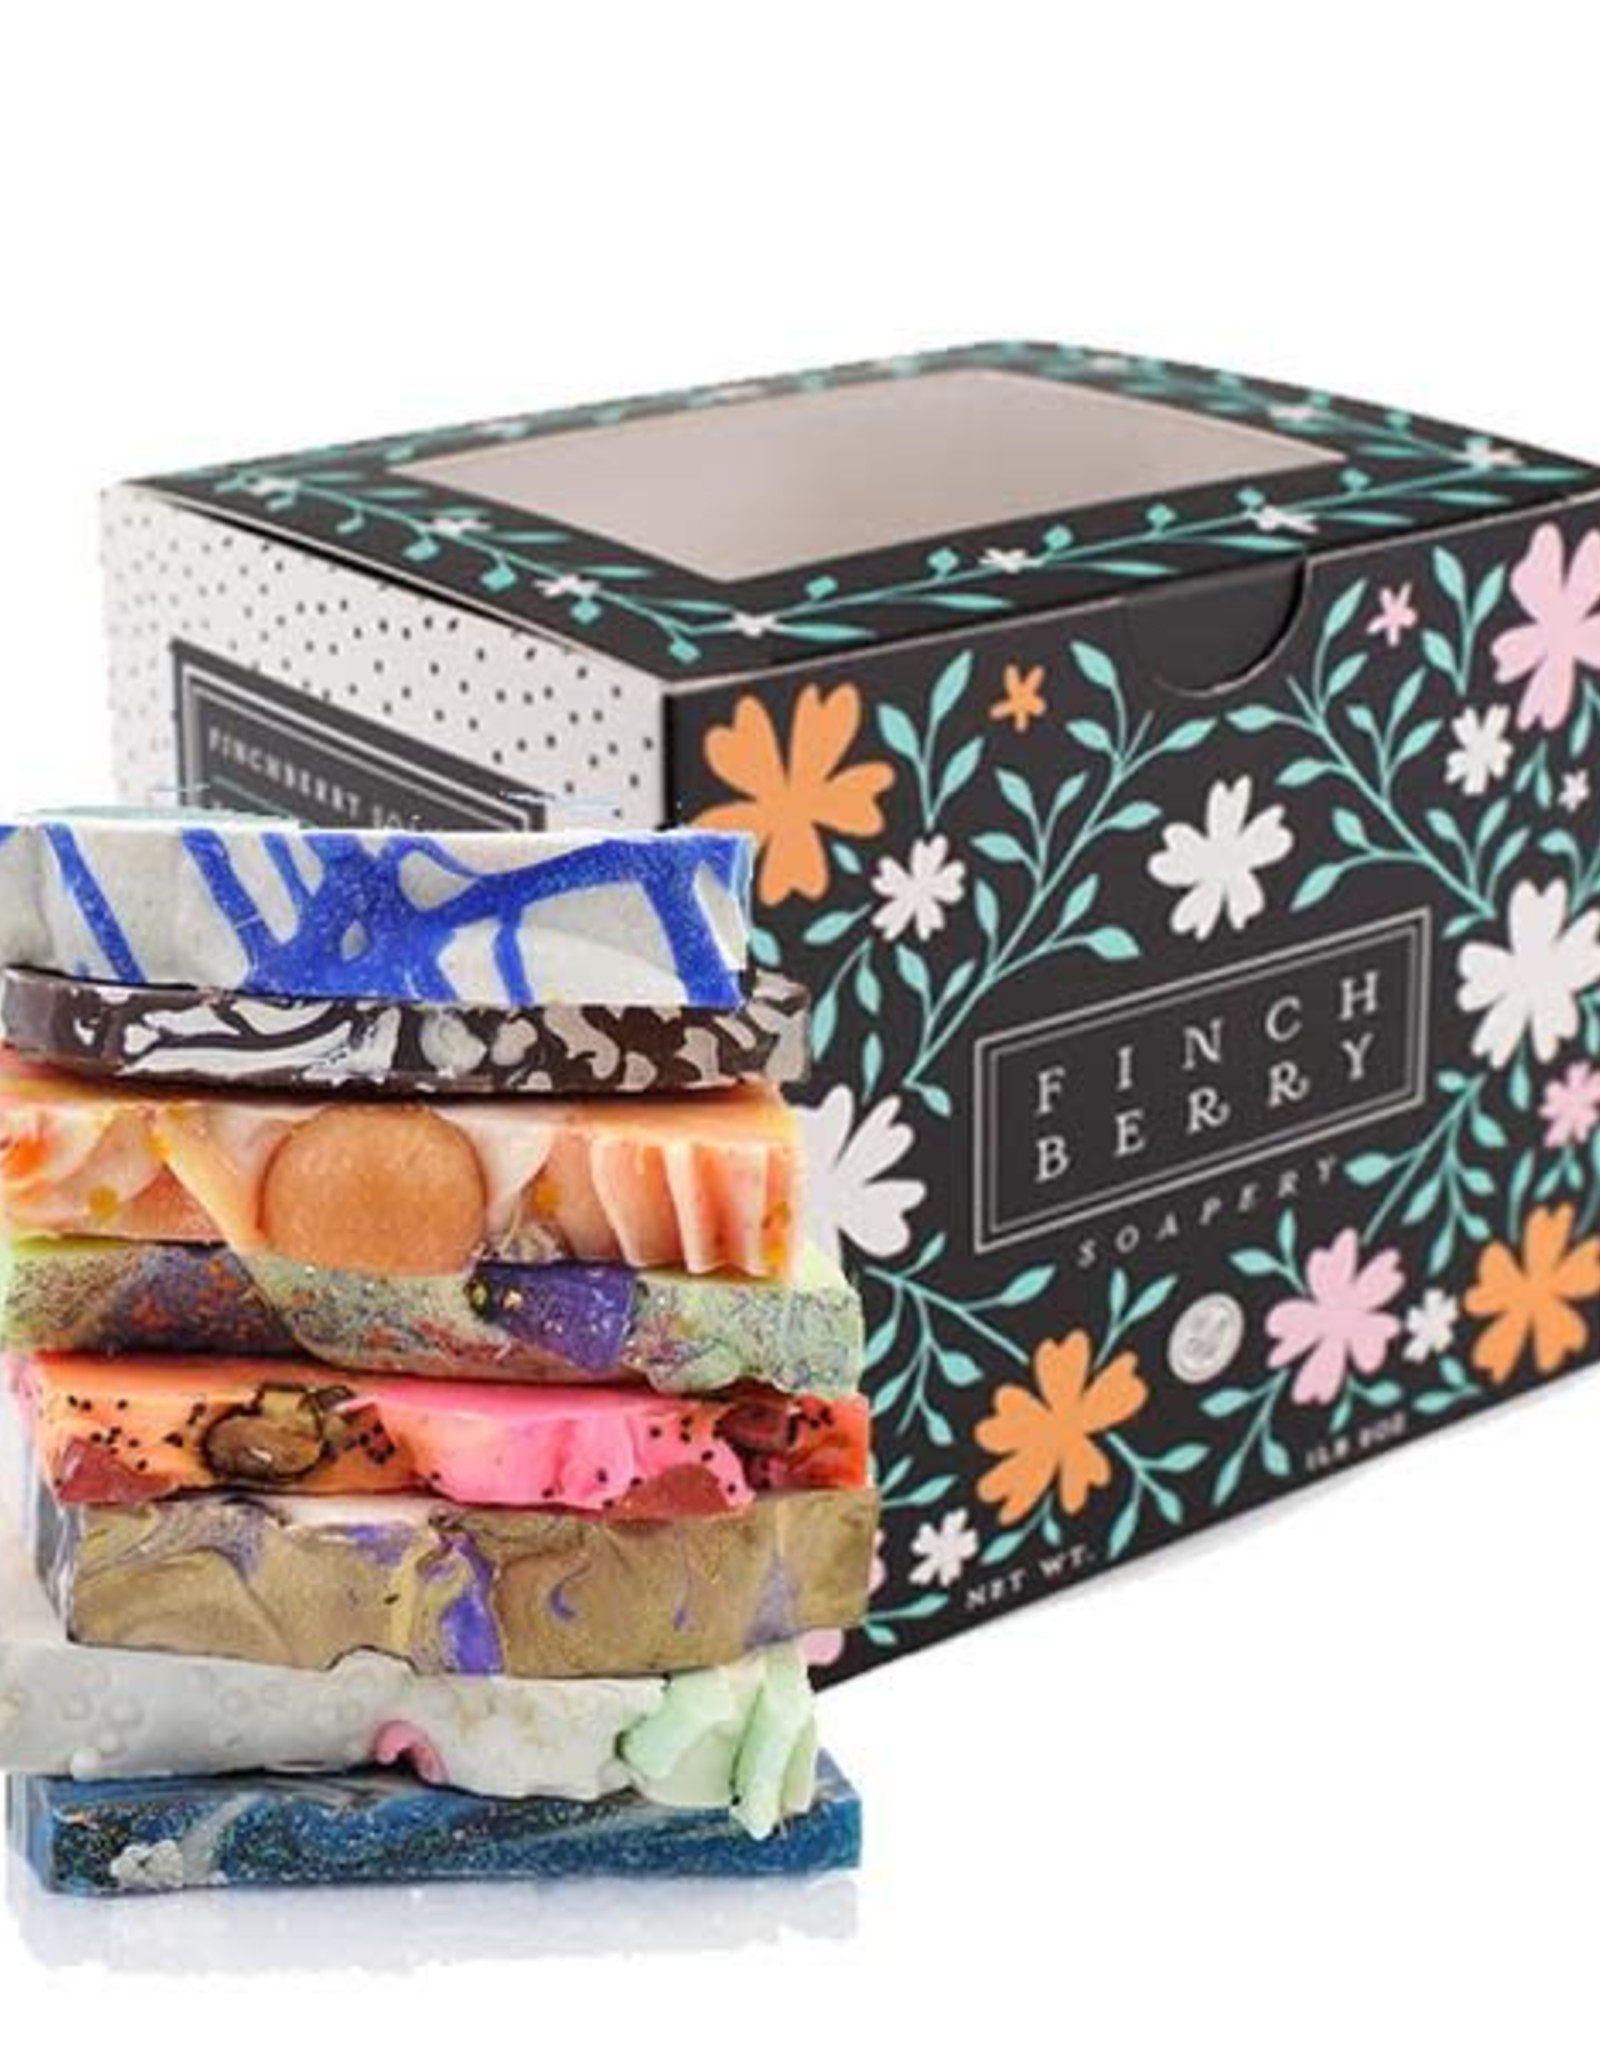 Finch Berry Finchberry 1 LB Sampler Soaps